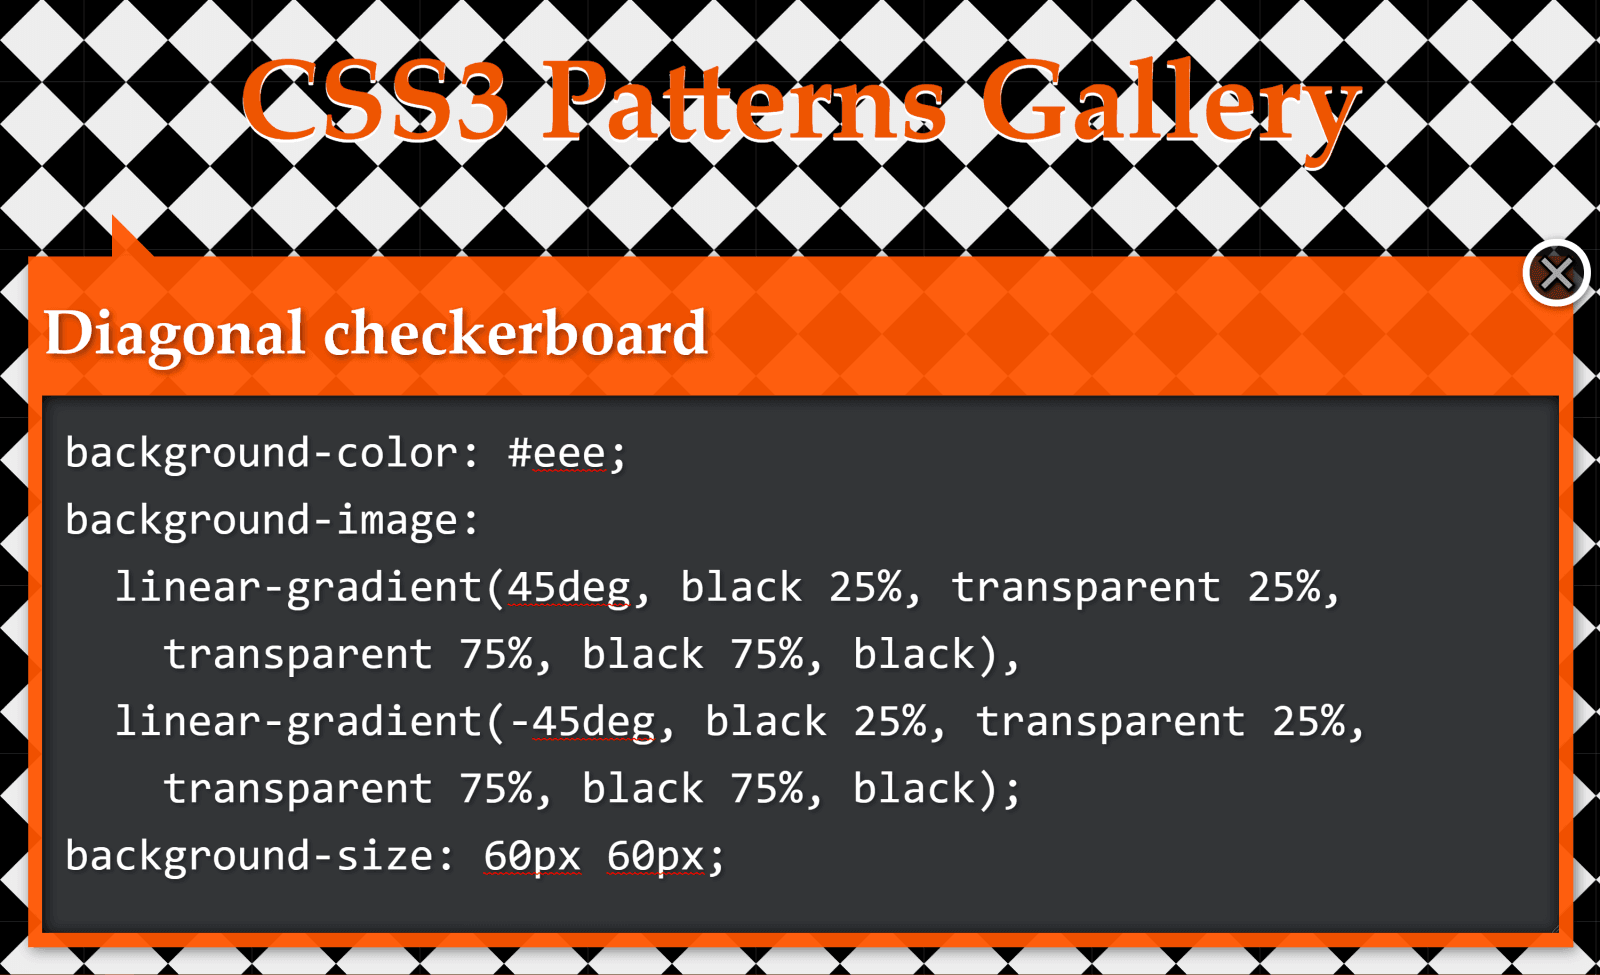 Screenshot. Shows the original diagonal checkerboard pattern with the code that was used to create it.